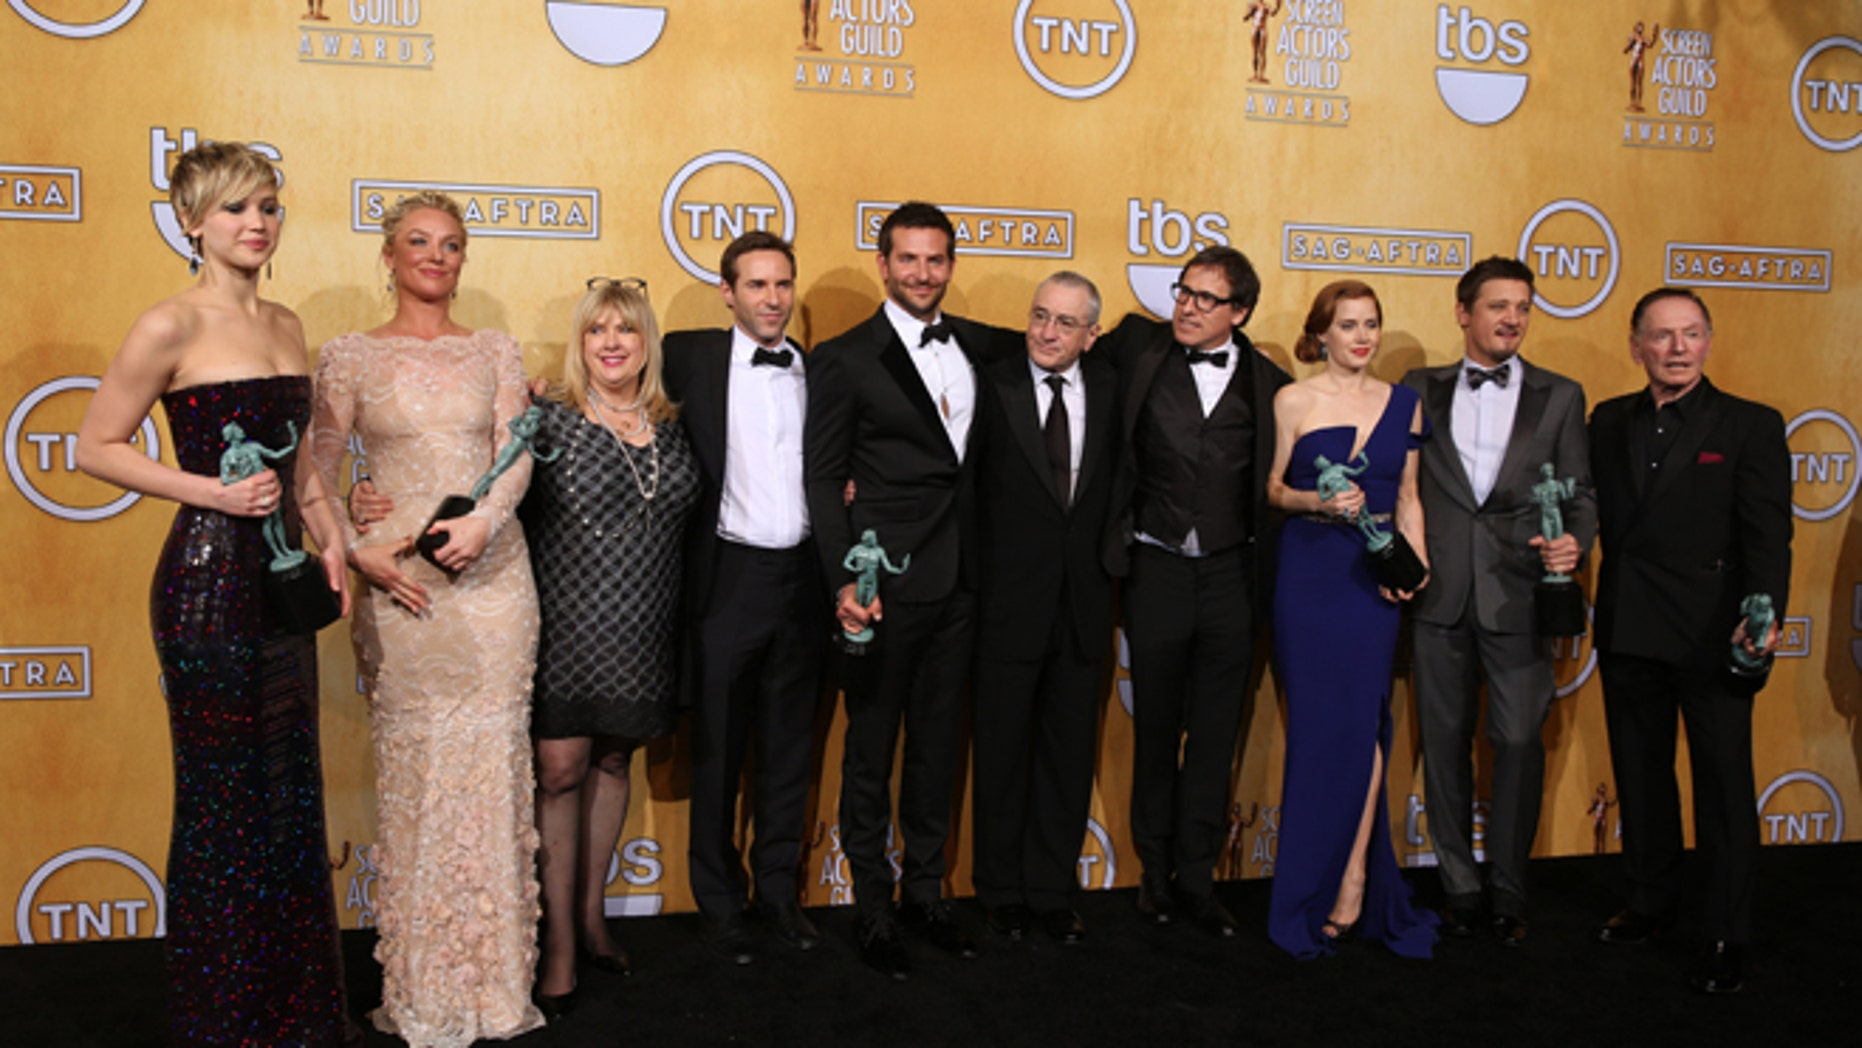 From left, Jennifer Lawrence, Elisabeth Rohm, Colleen Camp, Alessandro Nivola, Bradley Cooper, Robert De Niro, David O. Russell, Amy Adams, Jeremy Renner and Paul Herman pose in the press room with the award for outstanding performance by a cast in a motion picture for âAmerican Hustleâ at the 20th annual Screen Actors Guild Awards at the Shrine Auditorium on Saturday, Jan. 18, 2014, in Los Angeles. (Photo by Matt Sayles/Invision/AP)